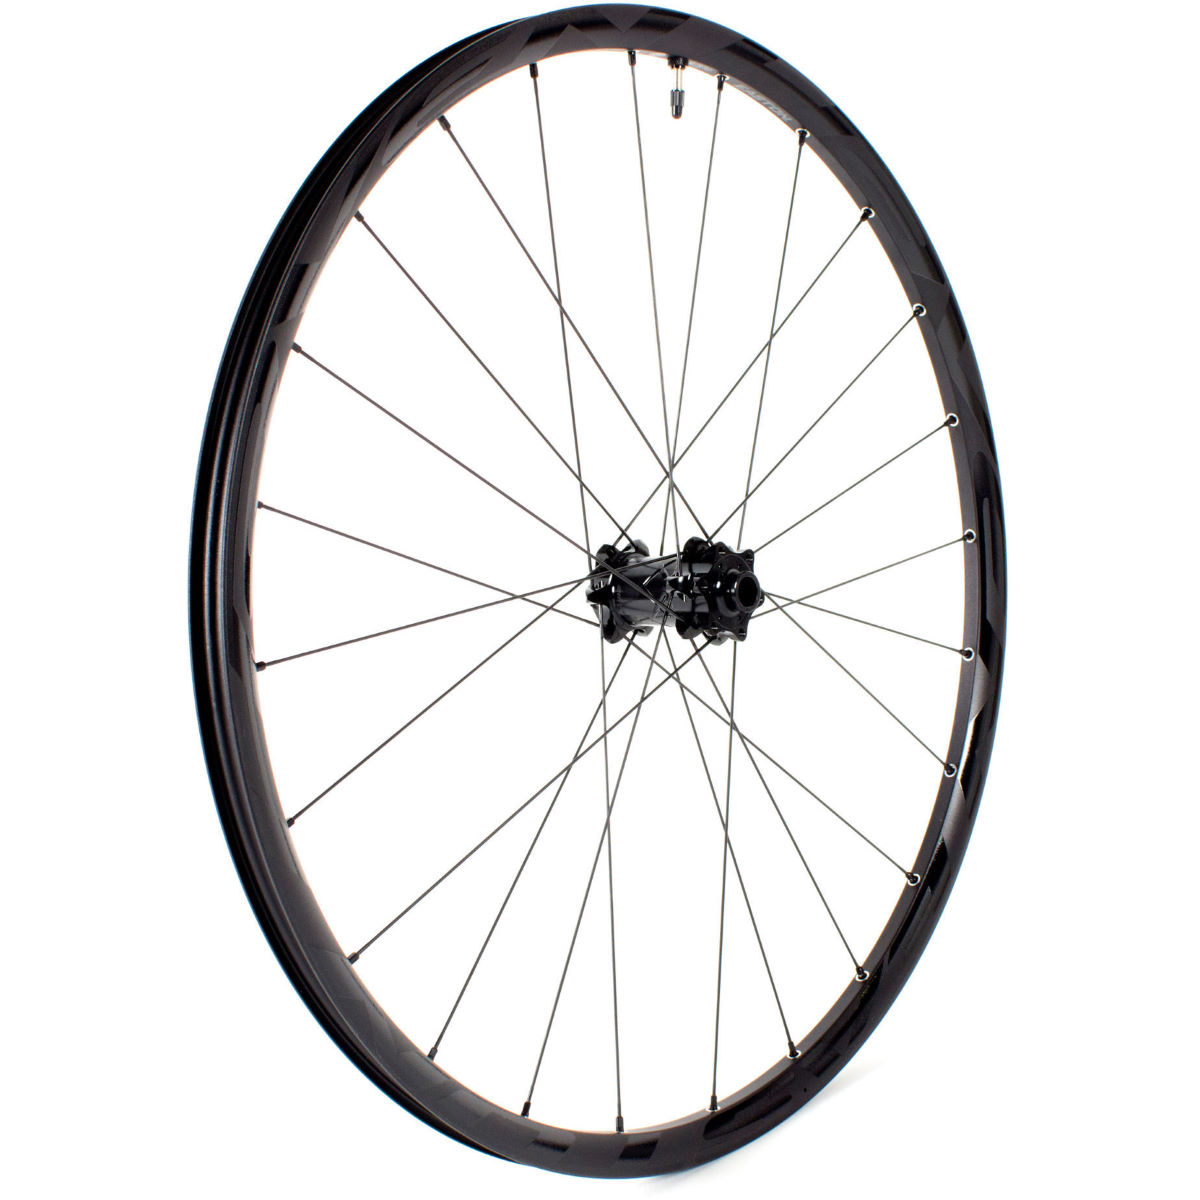 Roue avant VTT Easton Haven 27,5 pouces (alliage) - 15mm Front Noir